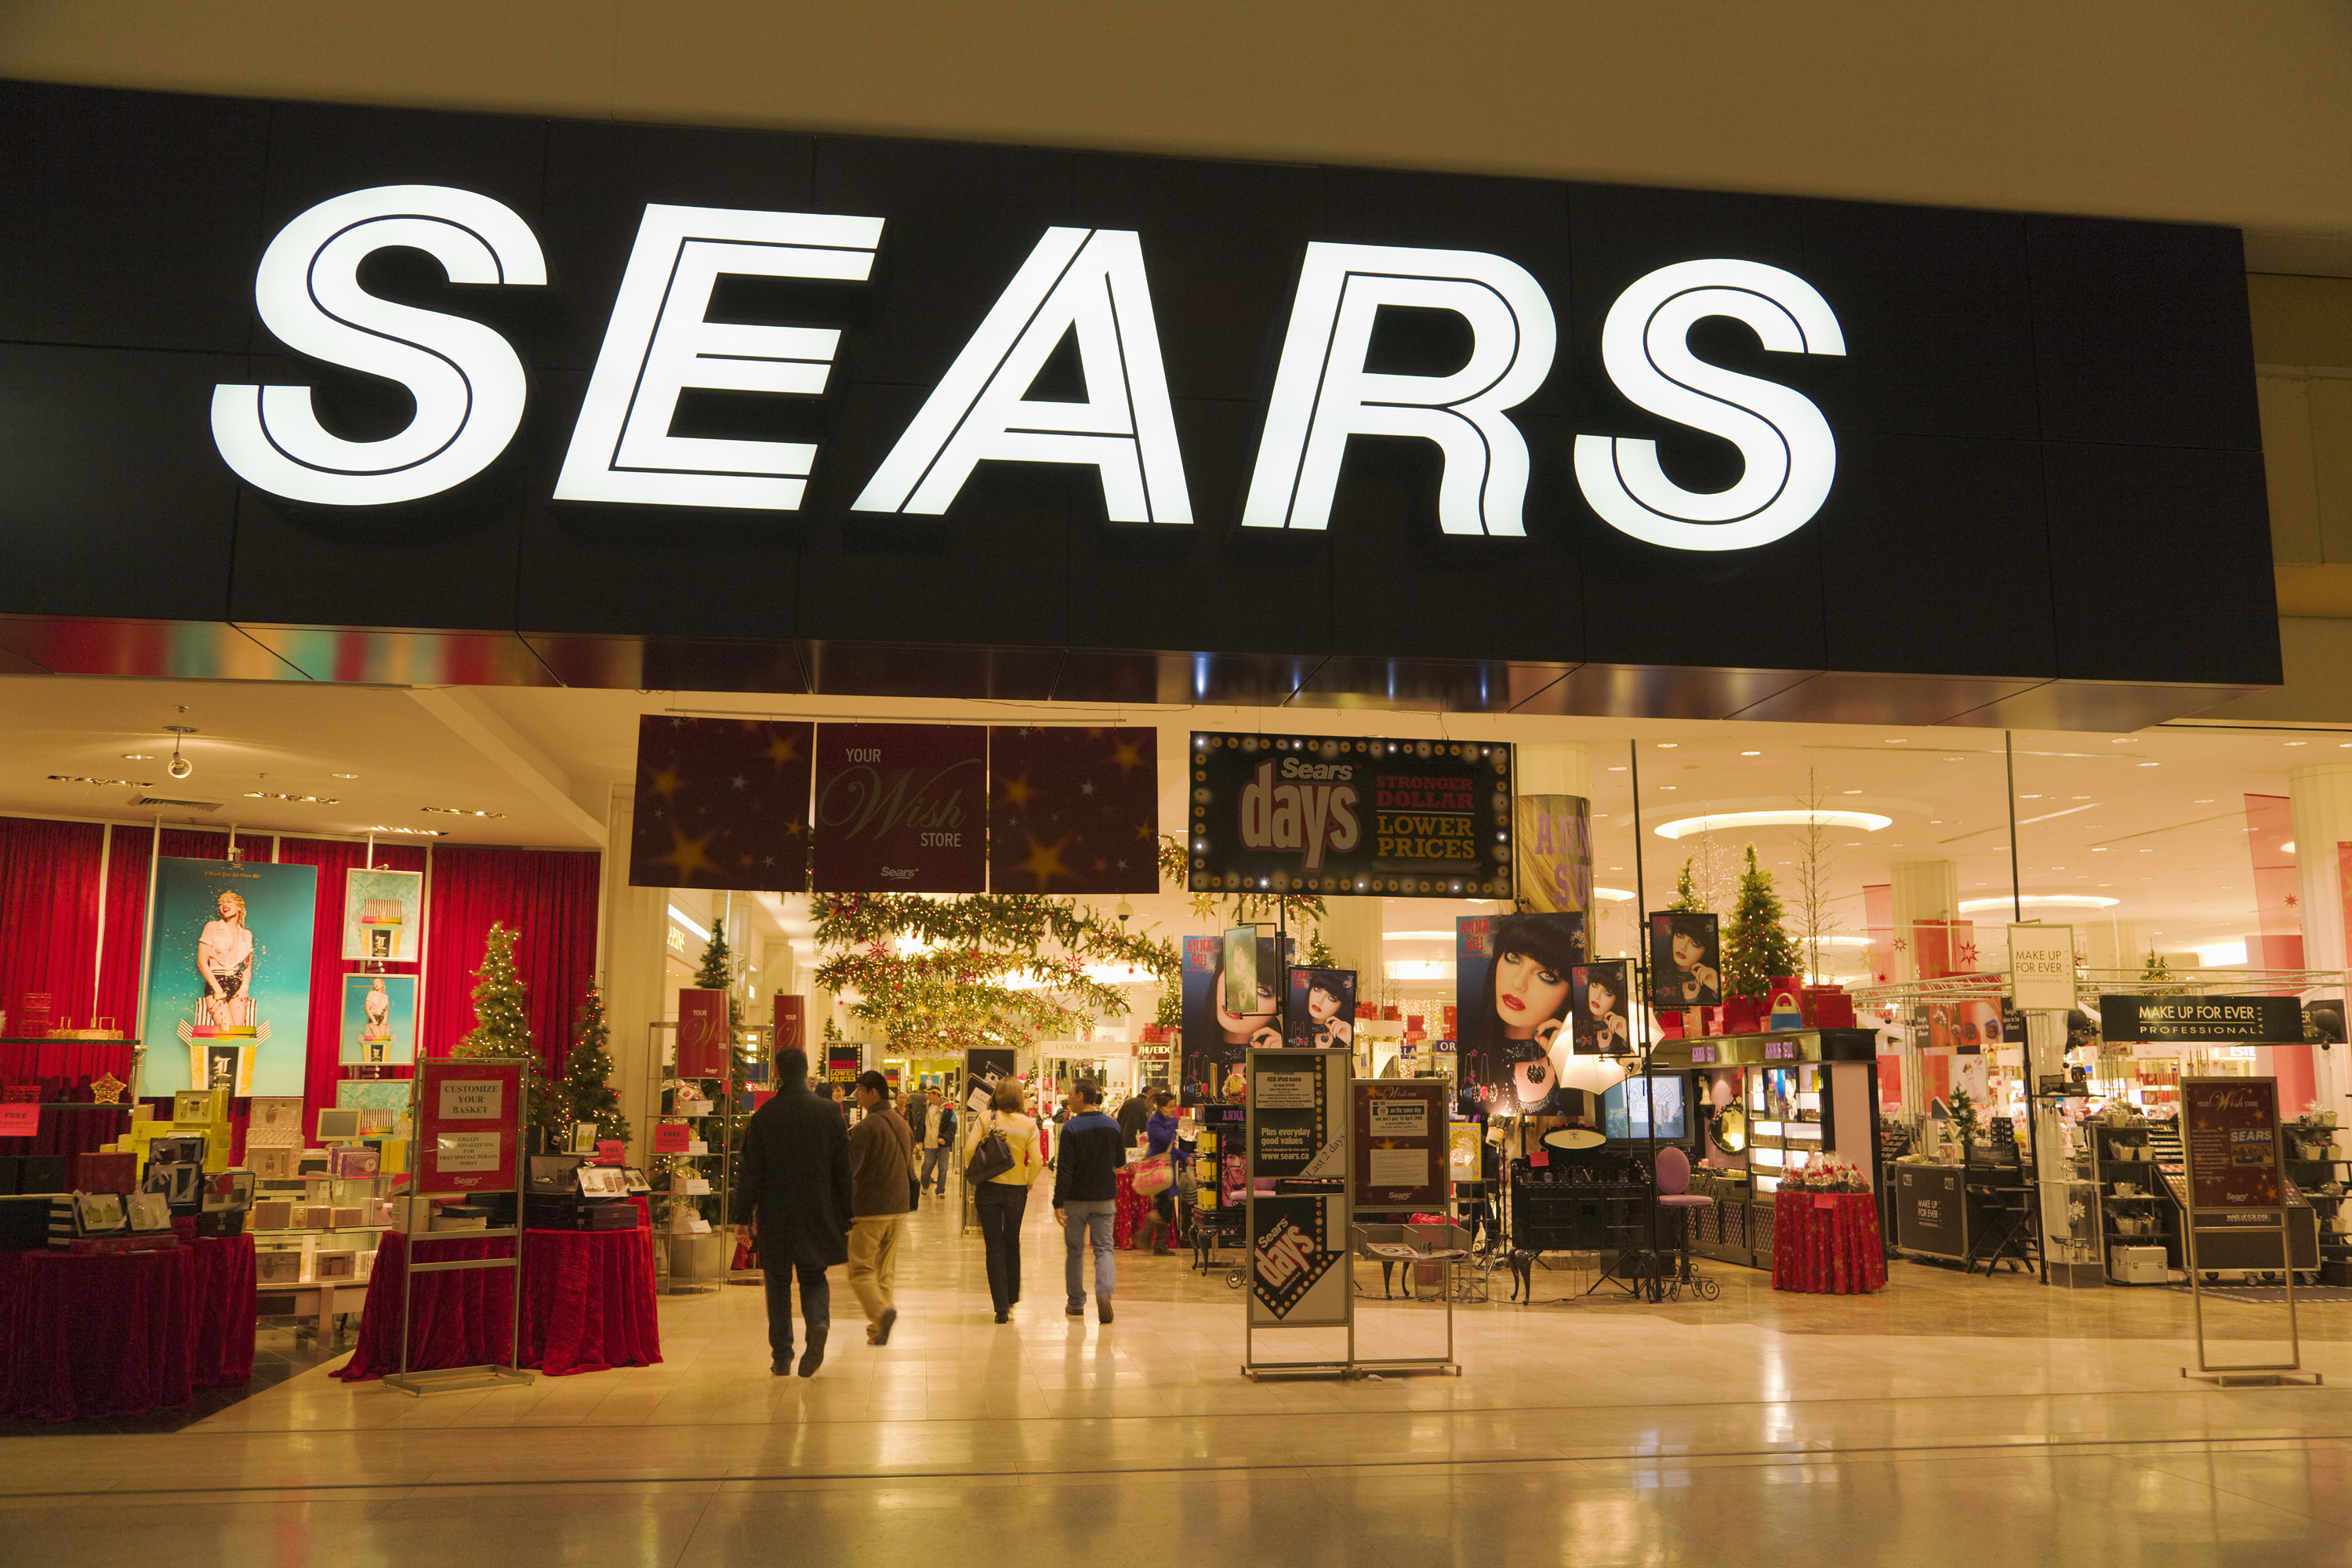 The entrance to Sears inside of a mall